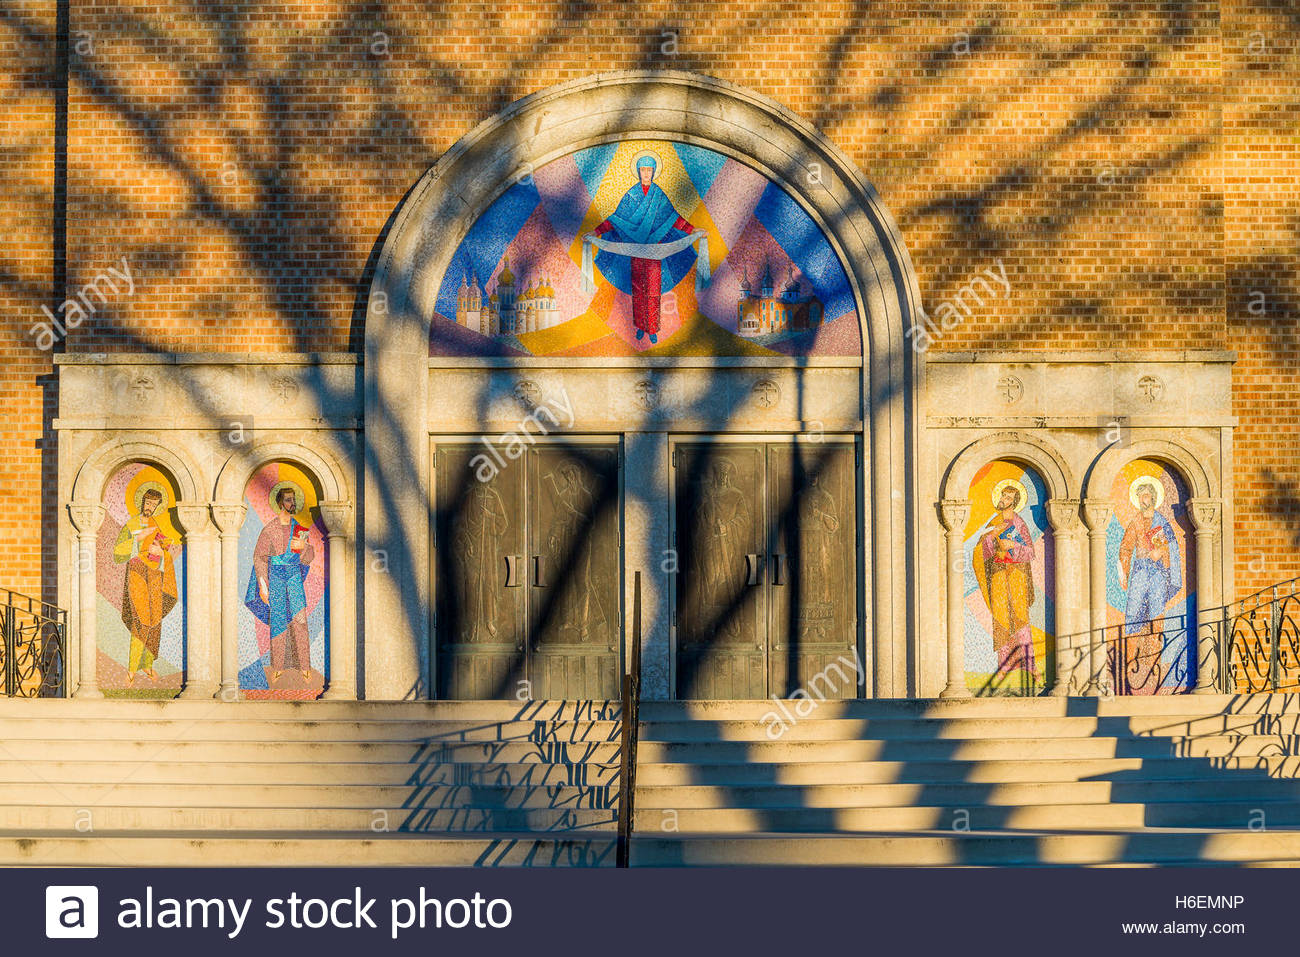 Byzantine style, Ukranian Orthodox Church, Cathedral of St. John, Edmonton, Alberta, Canada. - Stock Image